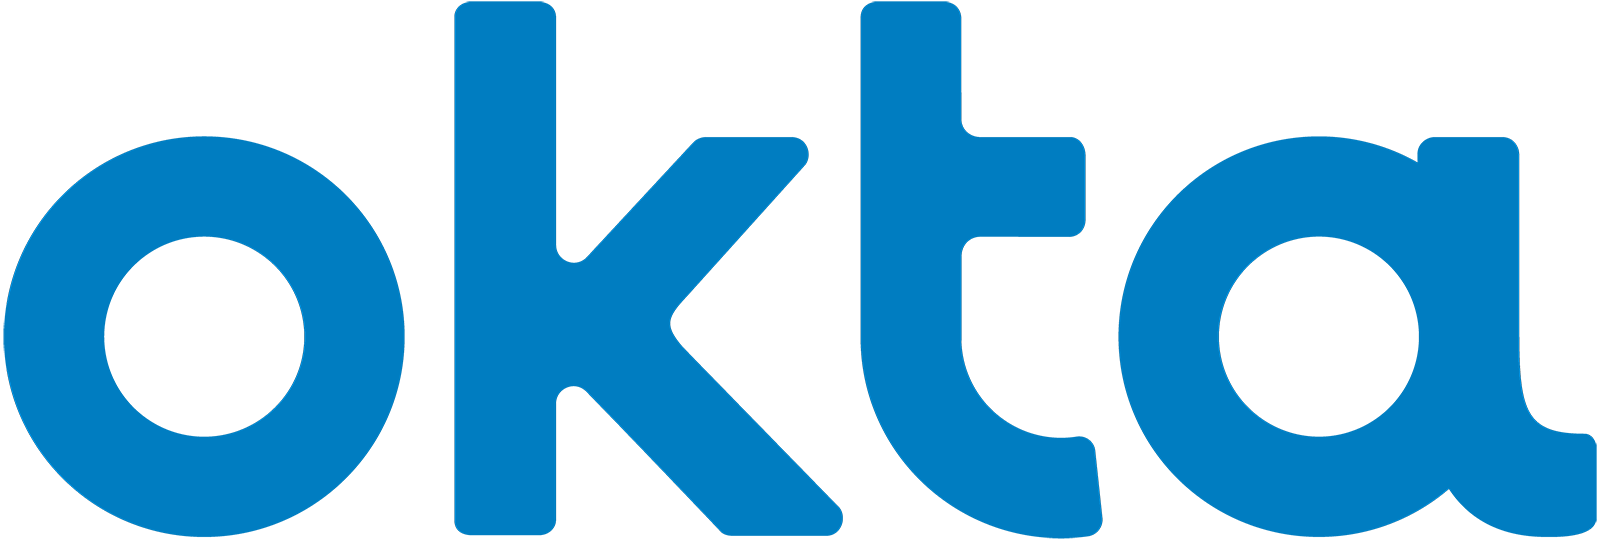 okta-logo-bright-blue-medium.png